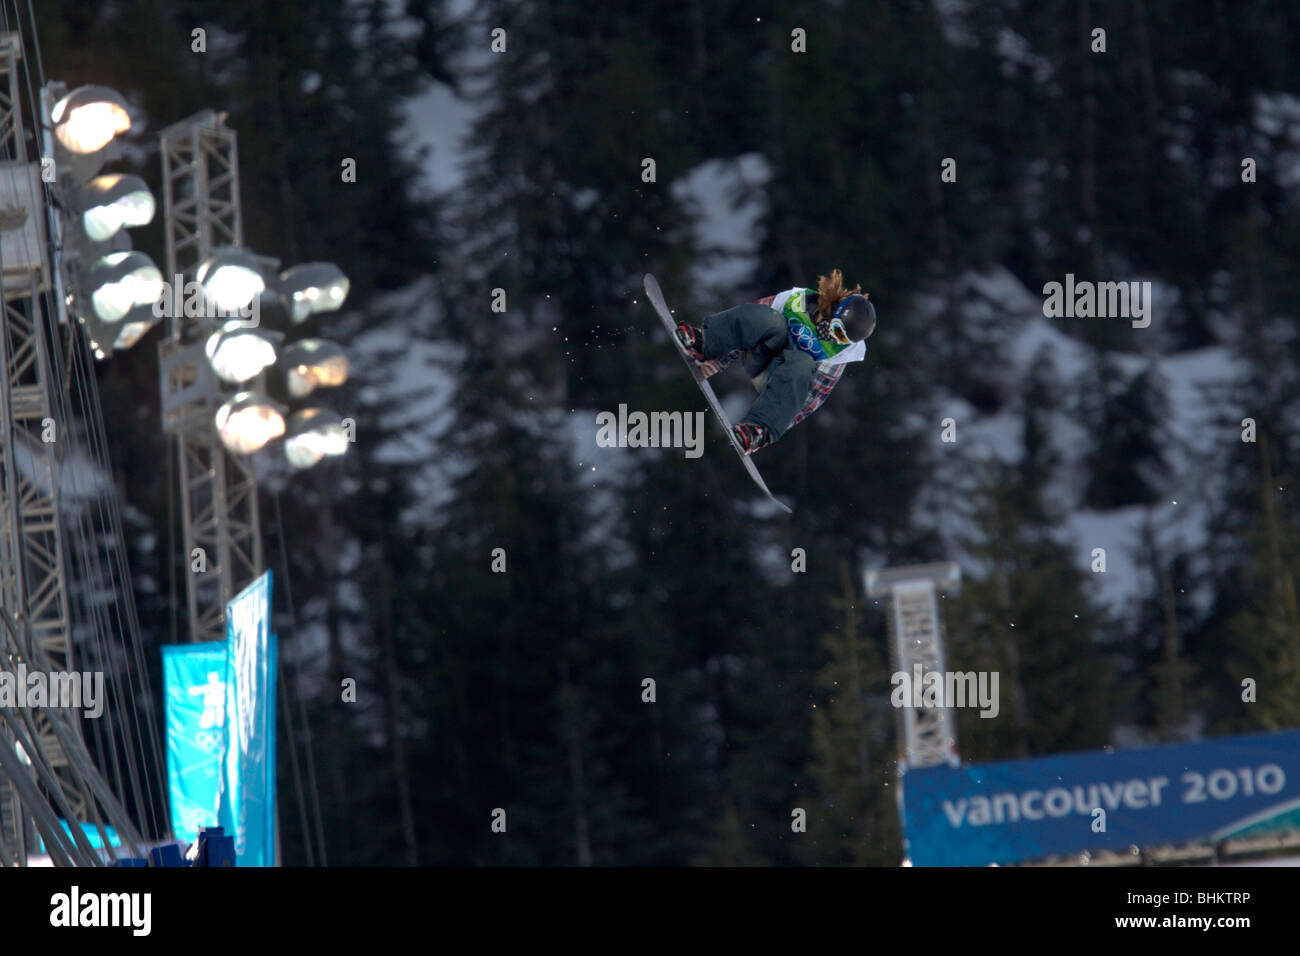 Shaun White (USA), gold medal winner, competing in the Men's Snowboard Halfpipe event at the 2010 Olympic Winter - Stock Image